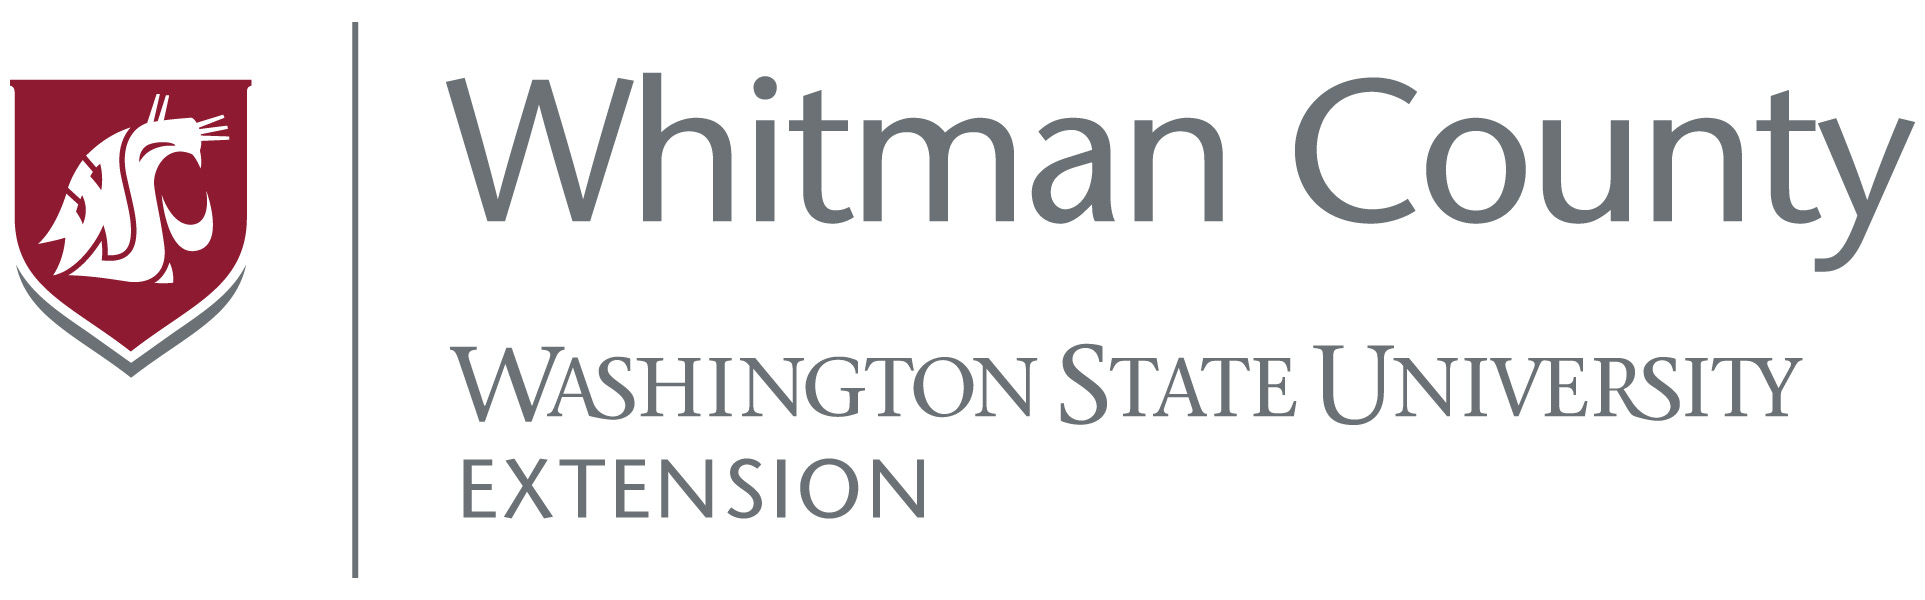 Whitman County extension logo